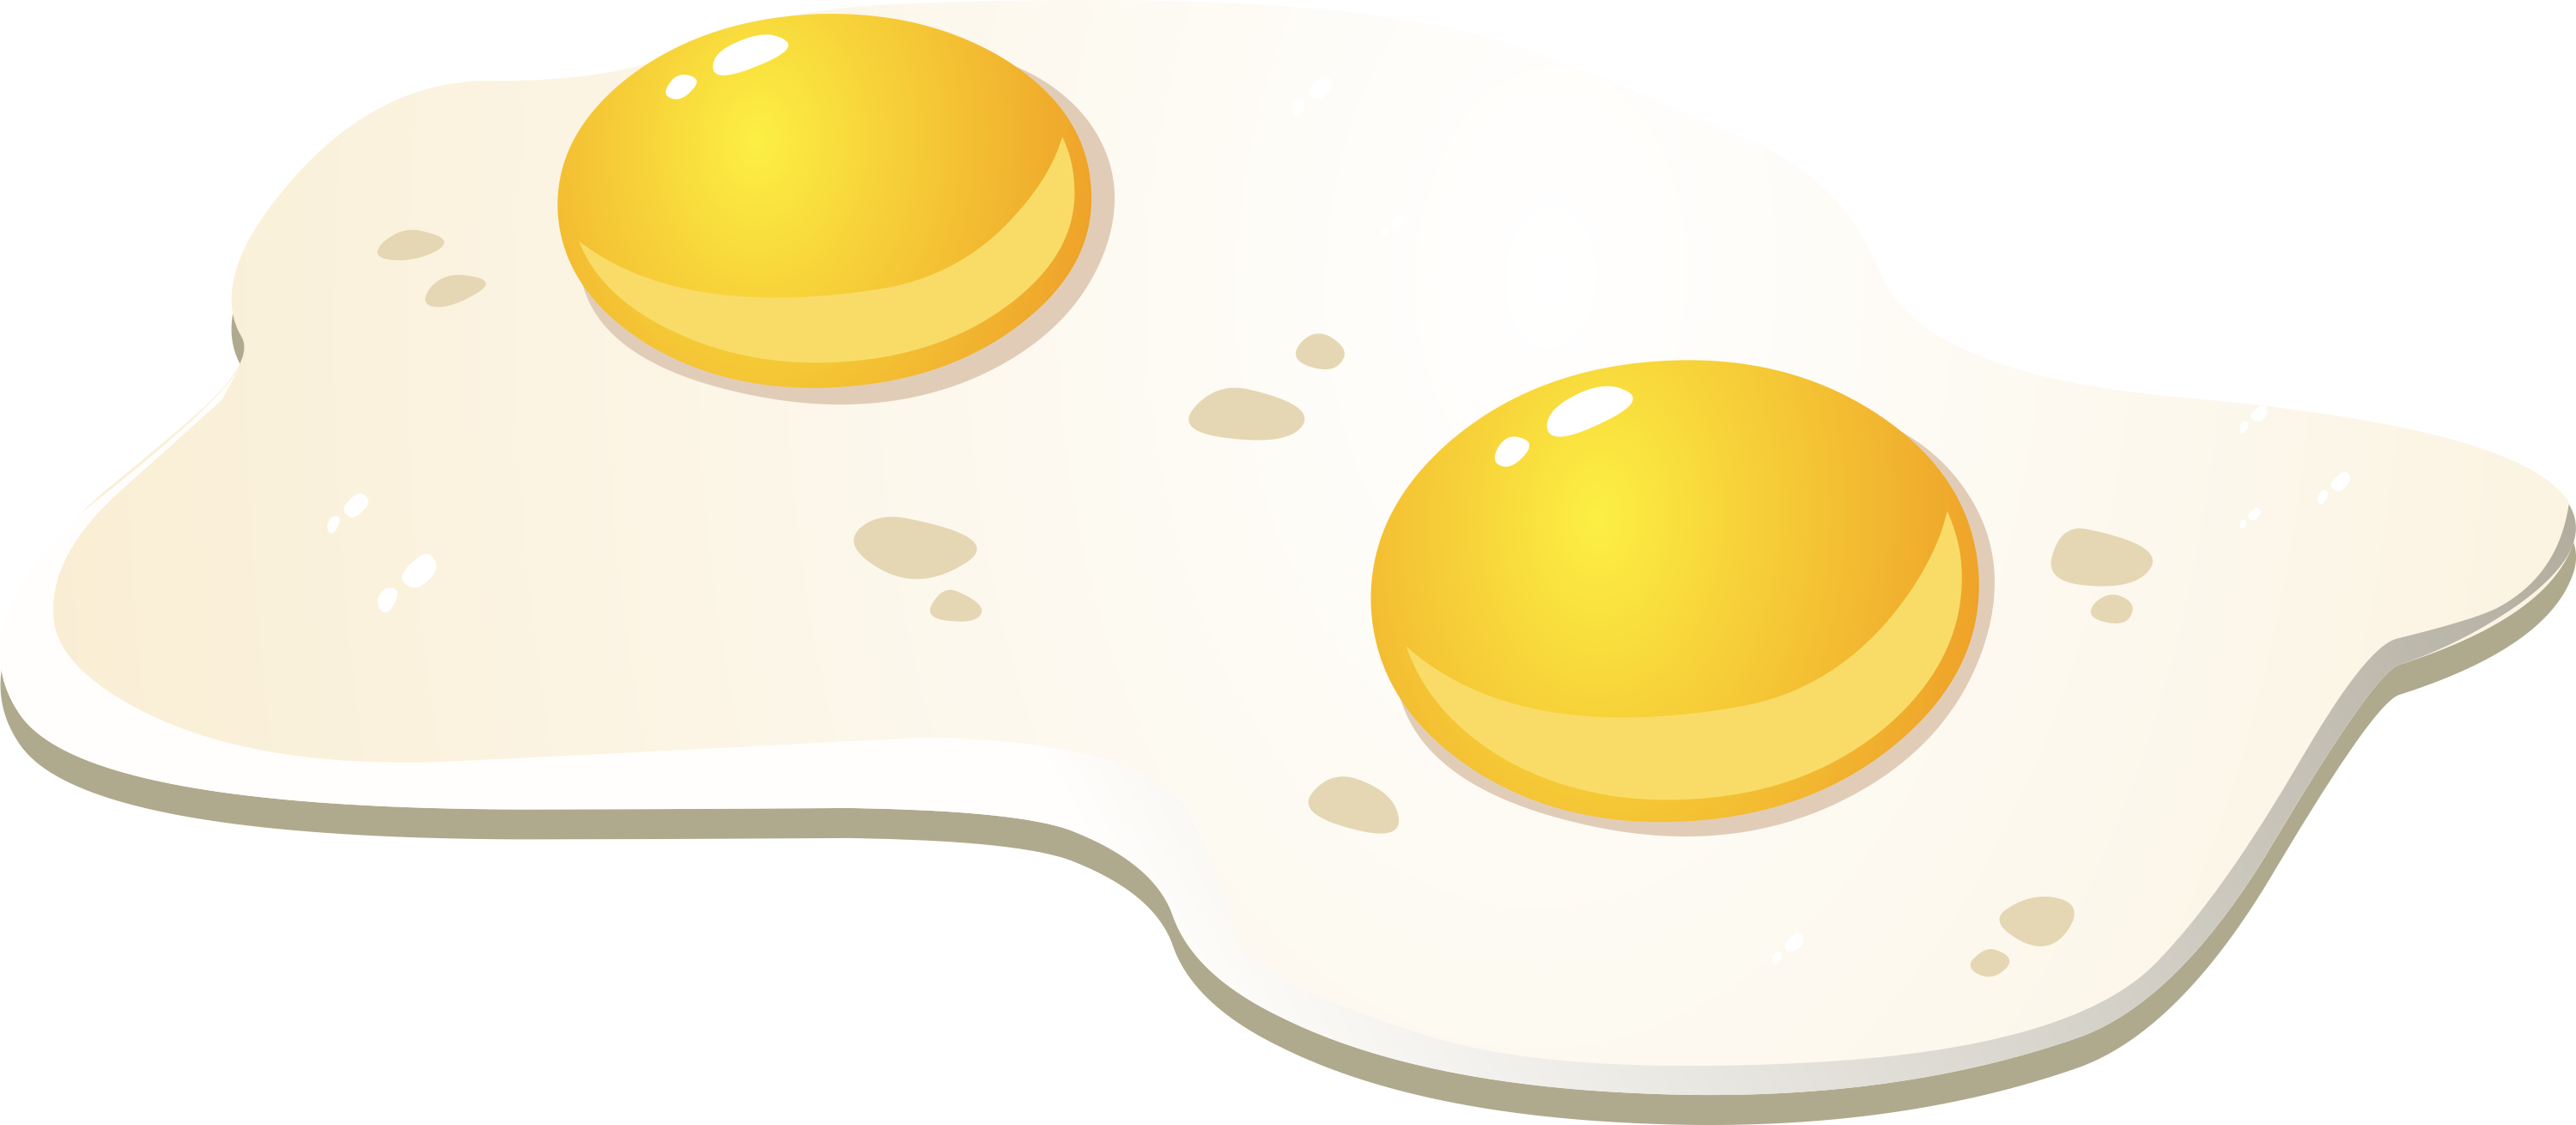 Egg Uncooked Clip Art. Download Full Size